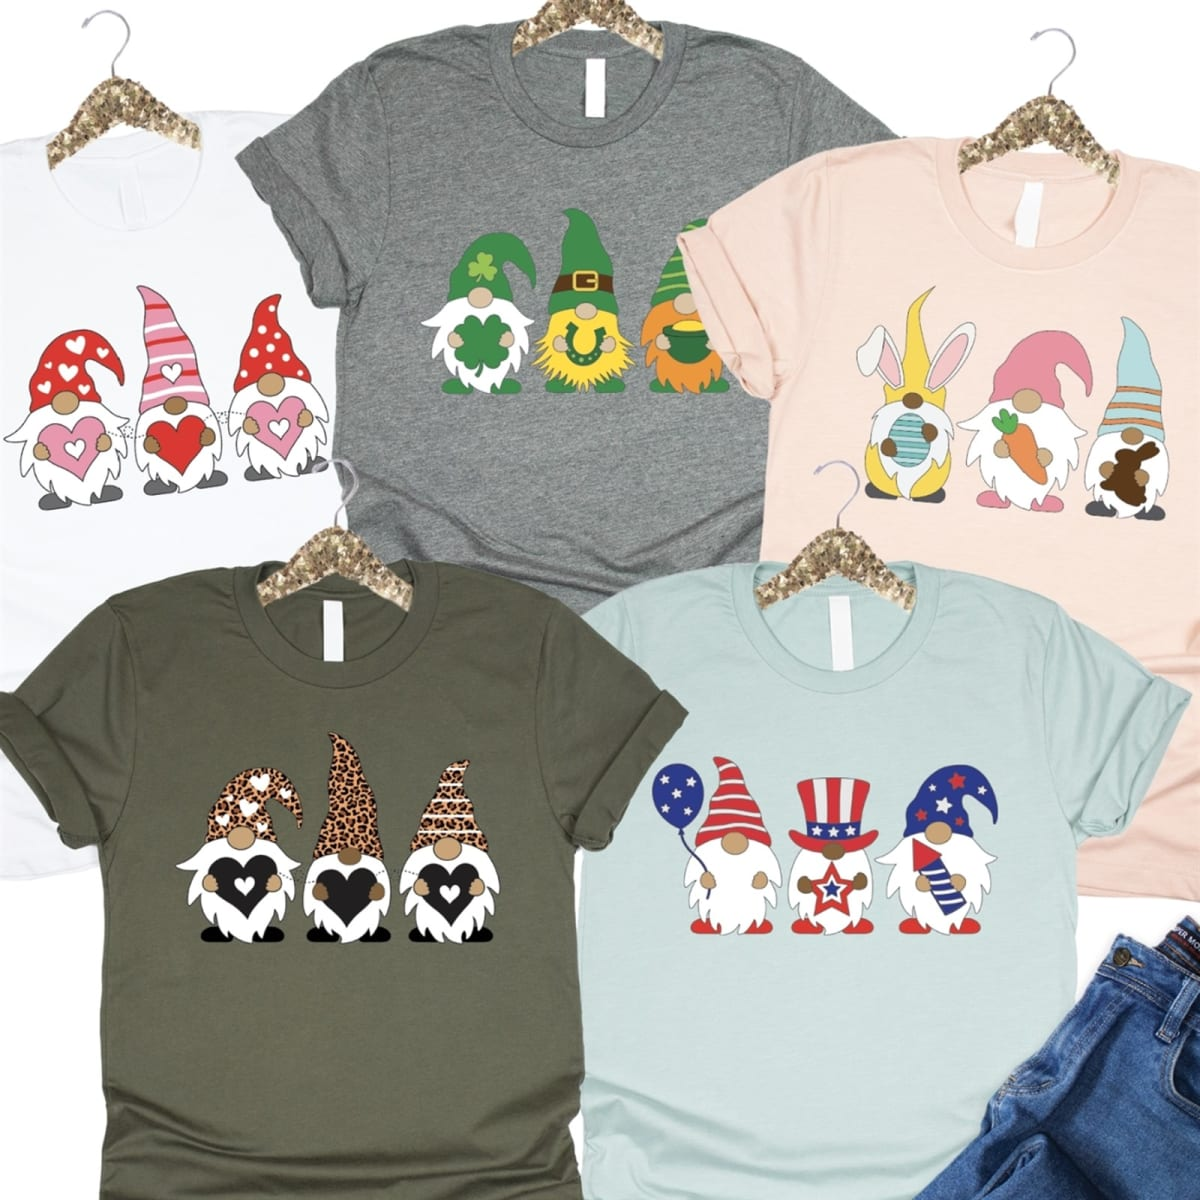 Festive Gnomes Graphic Tee